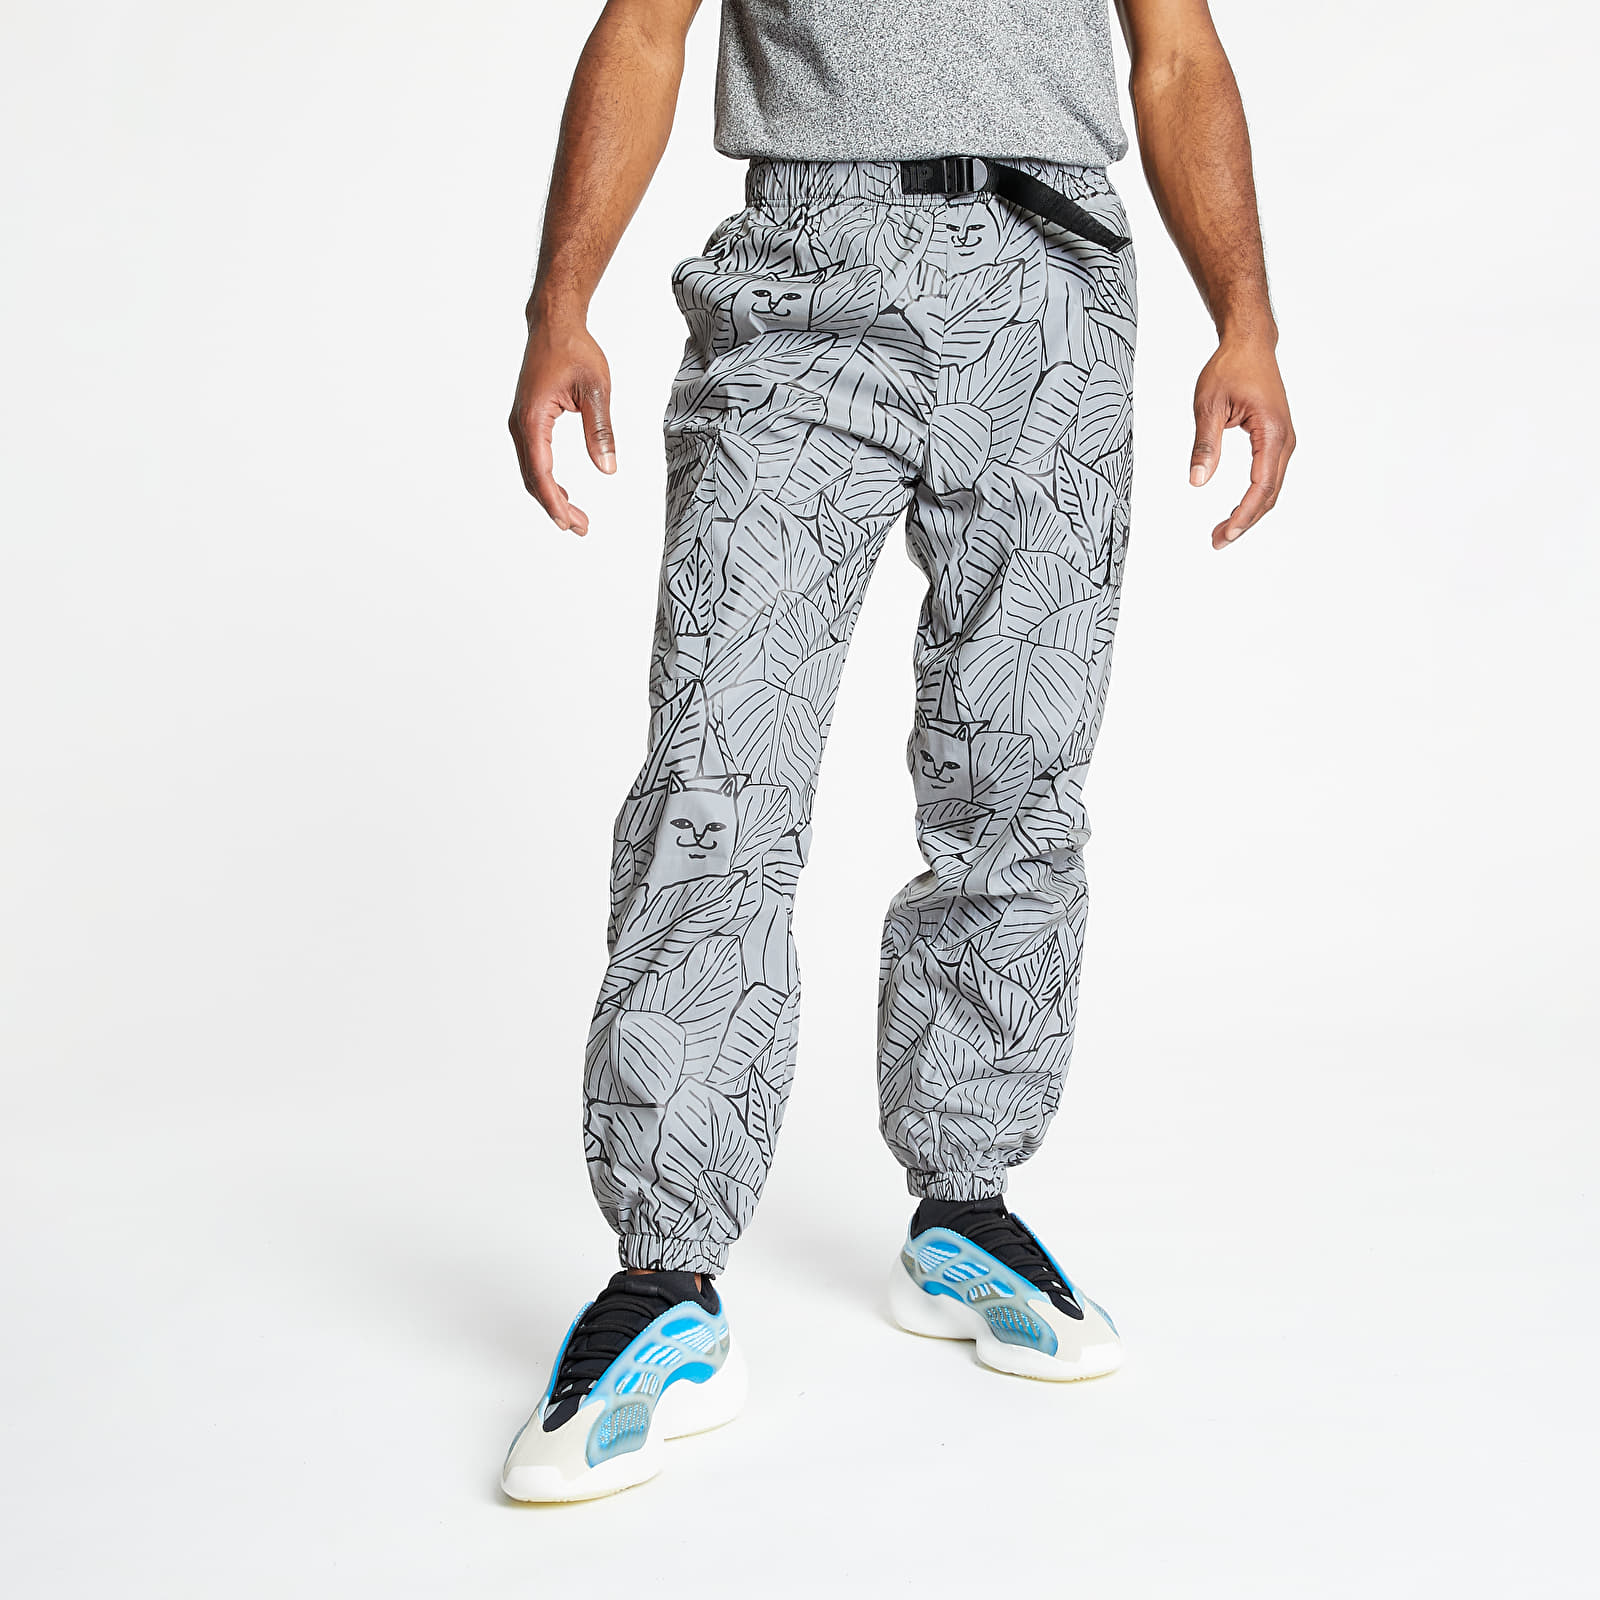 Pants and jeans RIPNDIP Nermal Leaf Cargo Pants Reflective